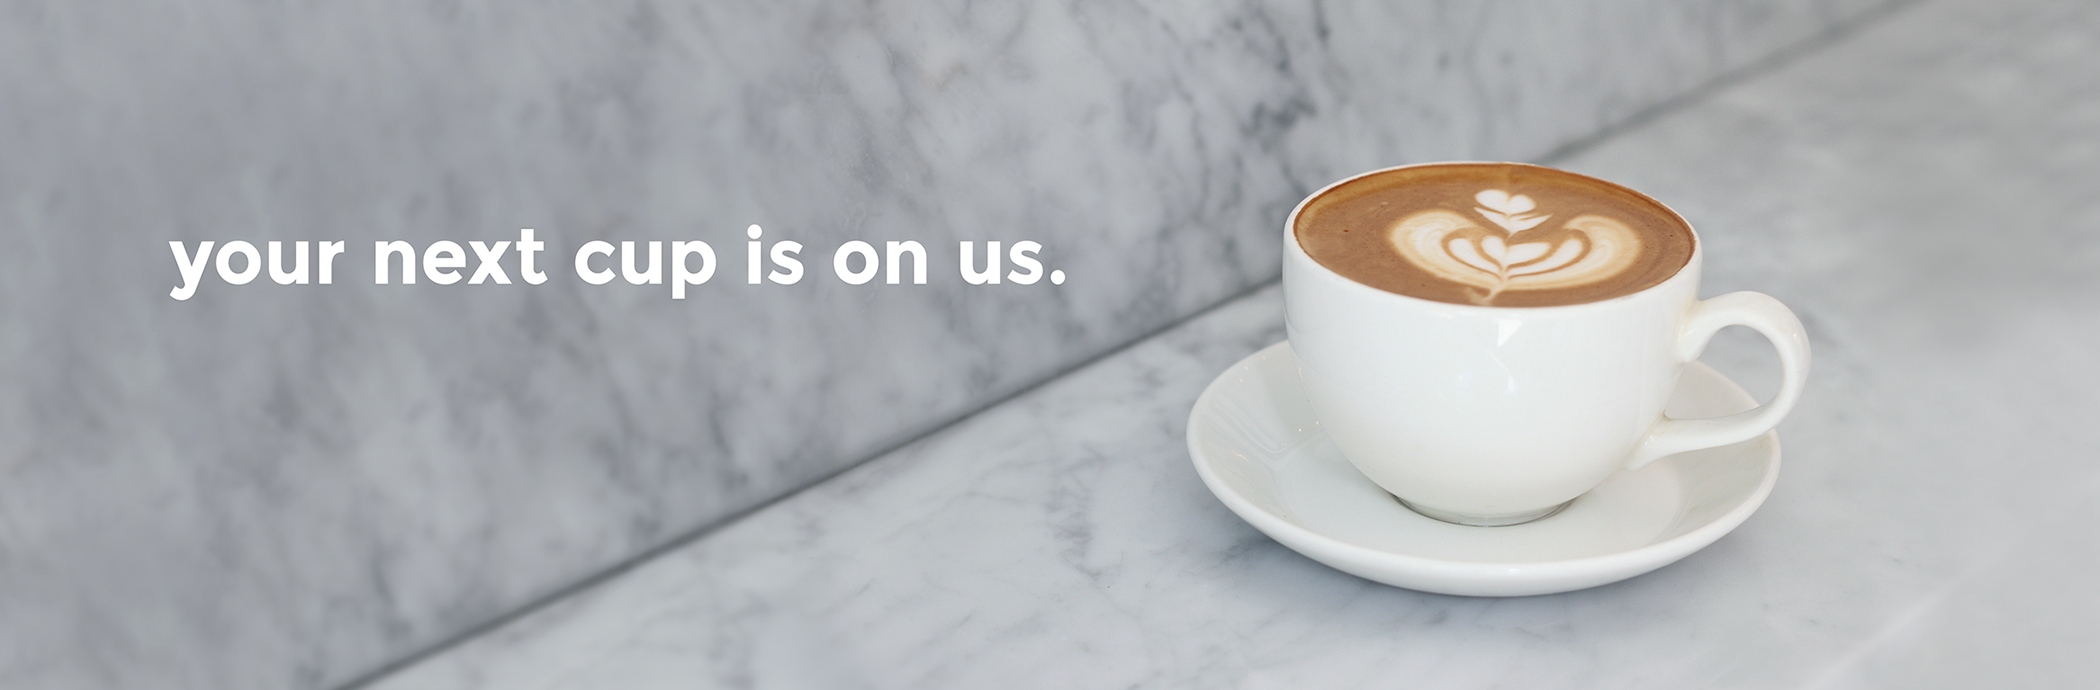 Your next cup of coffee is on us.